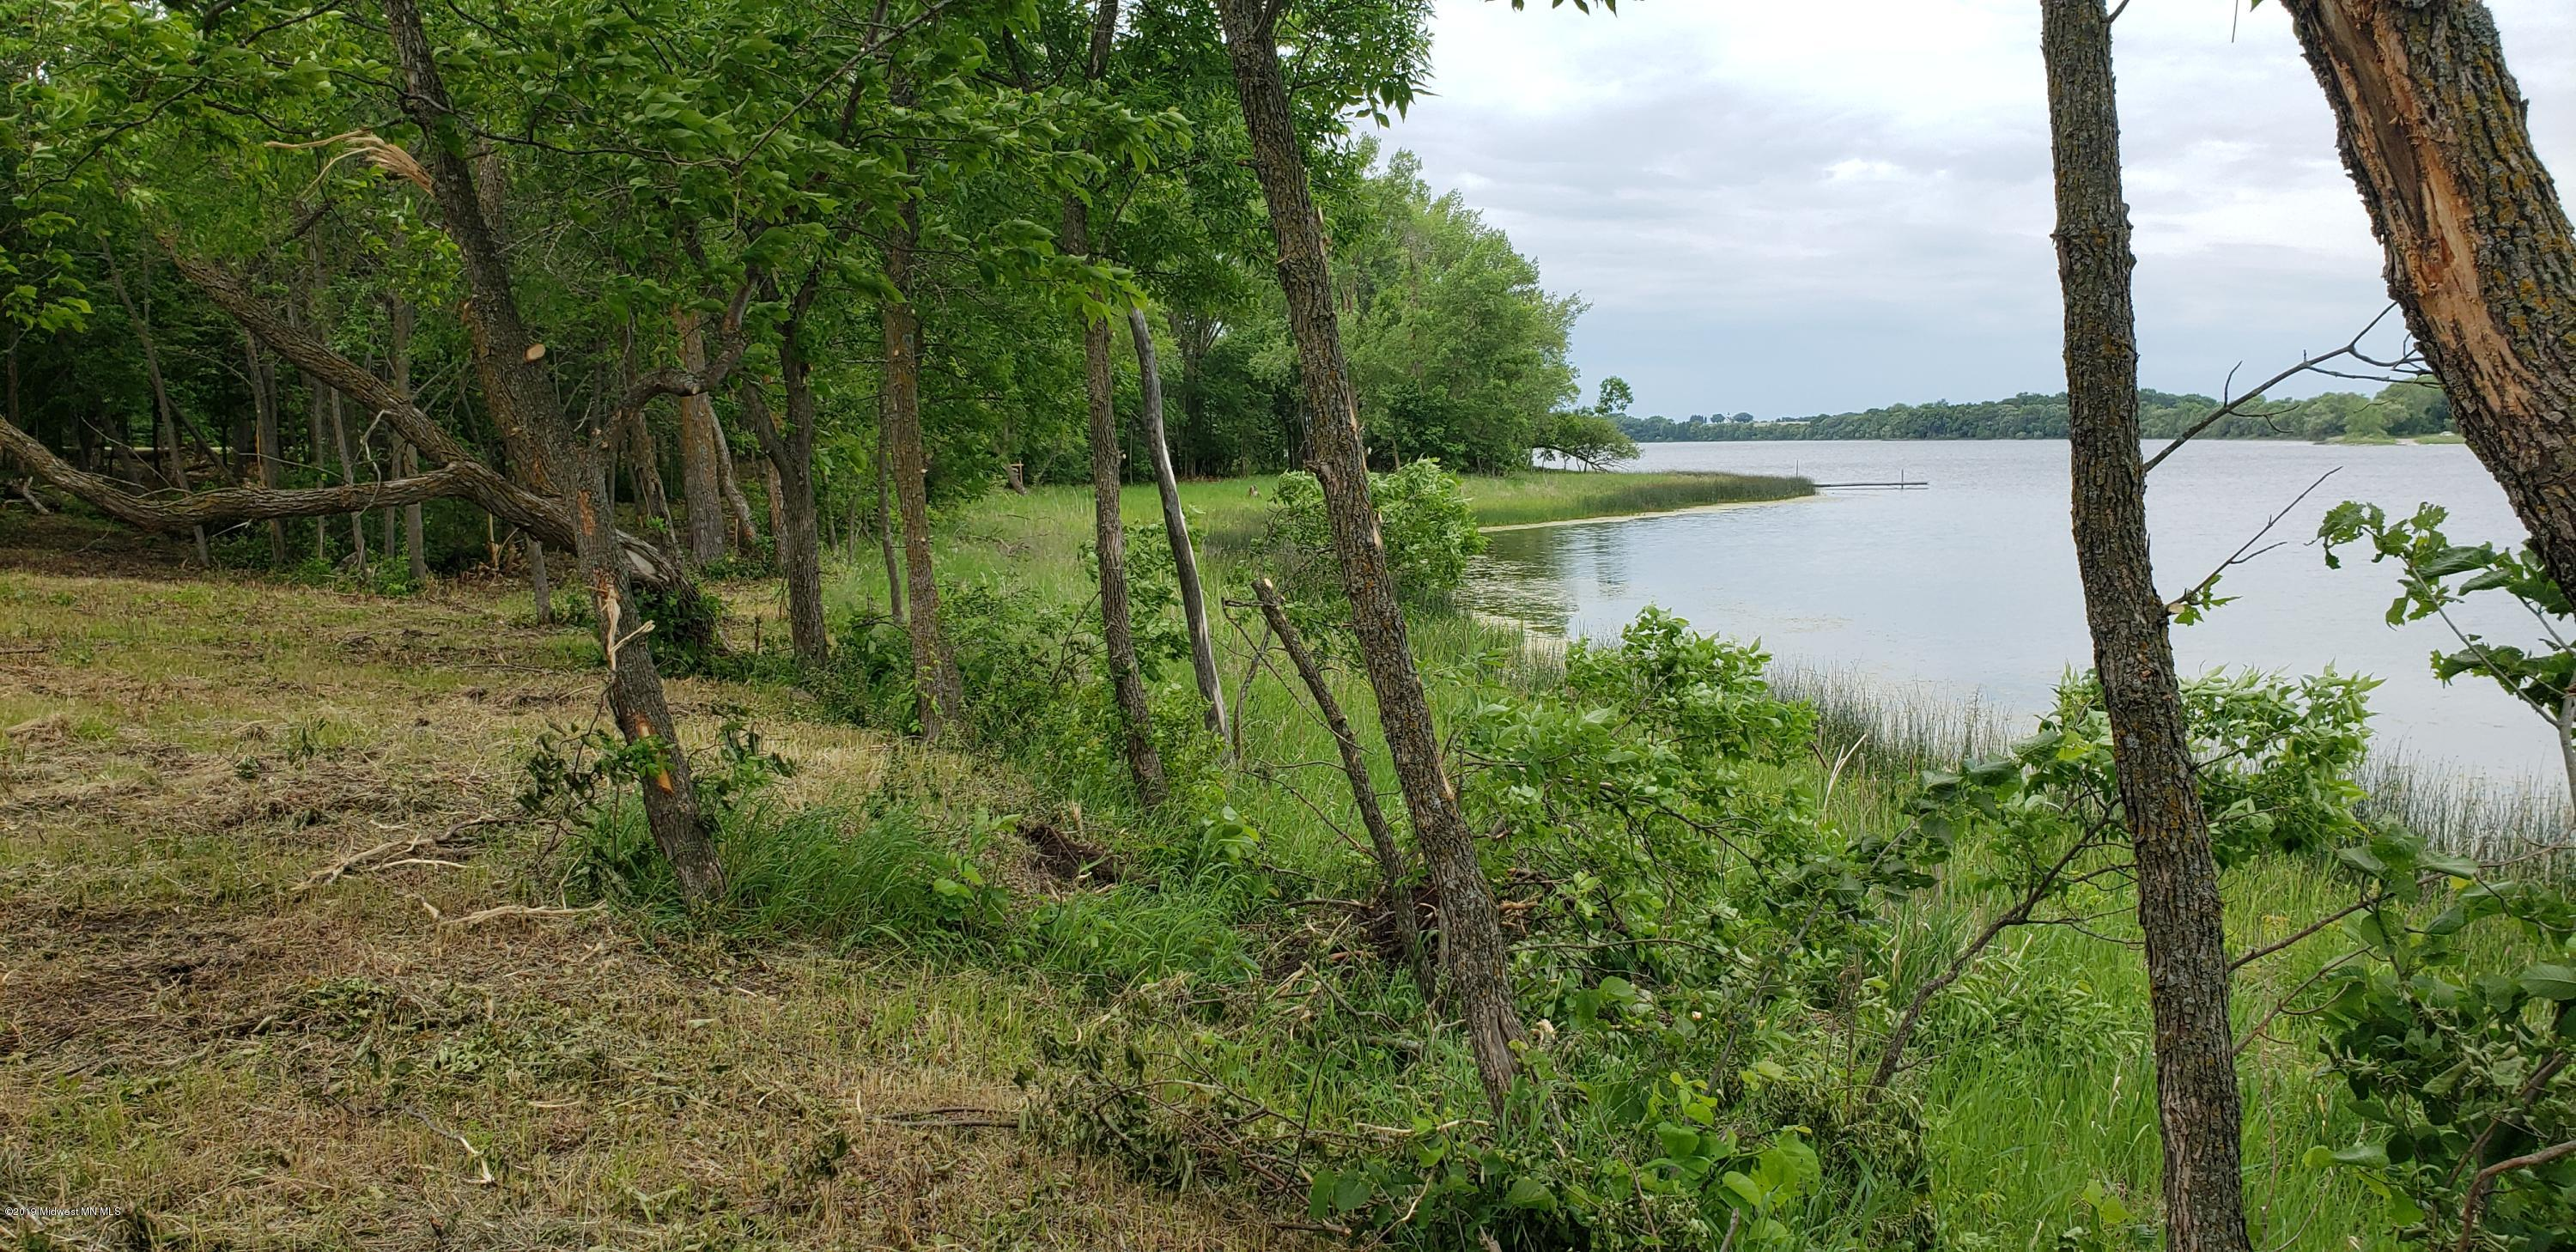 Lot 3 Bluegill Bay Estates - Ashby, MN 56309